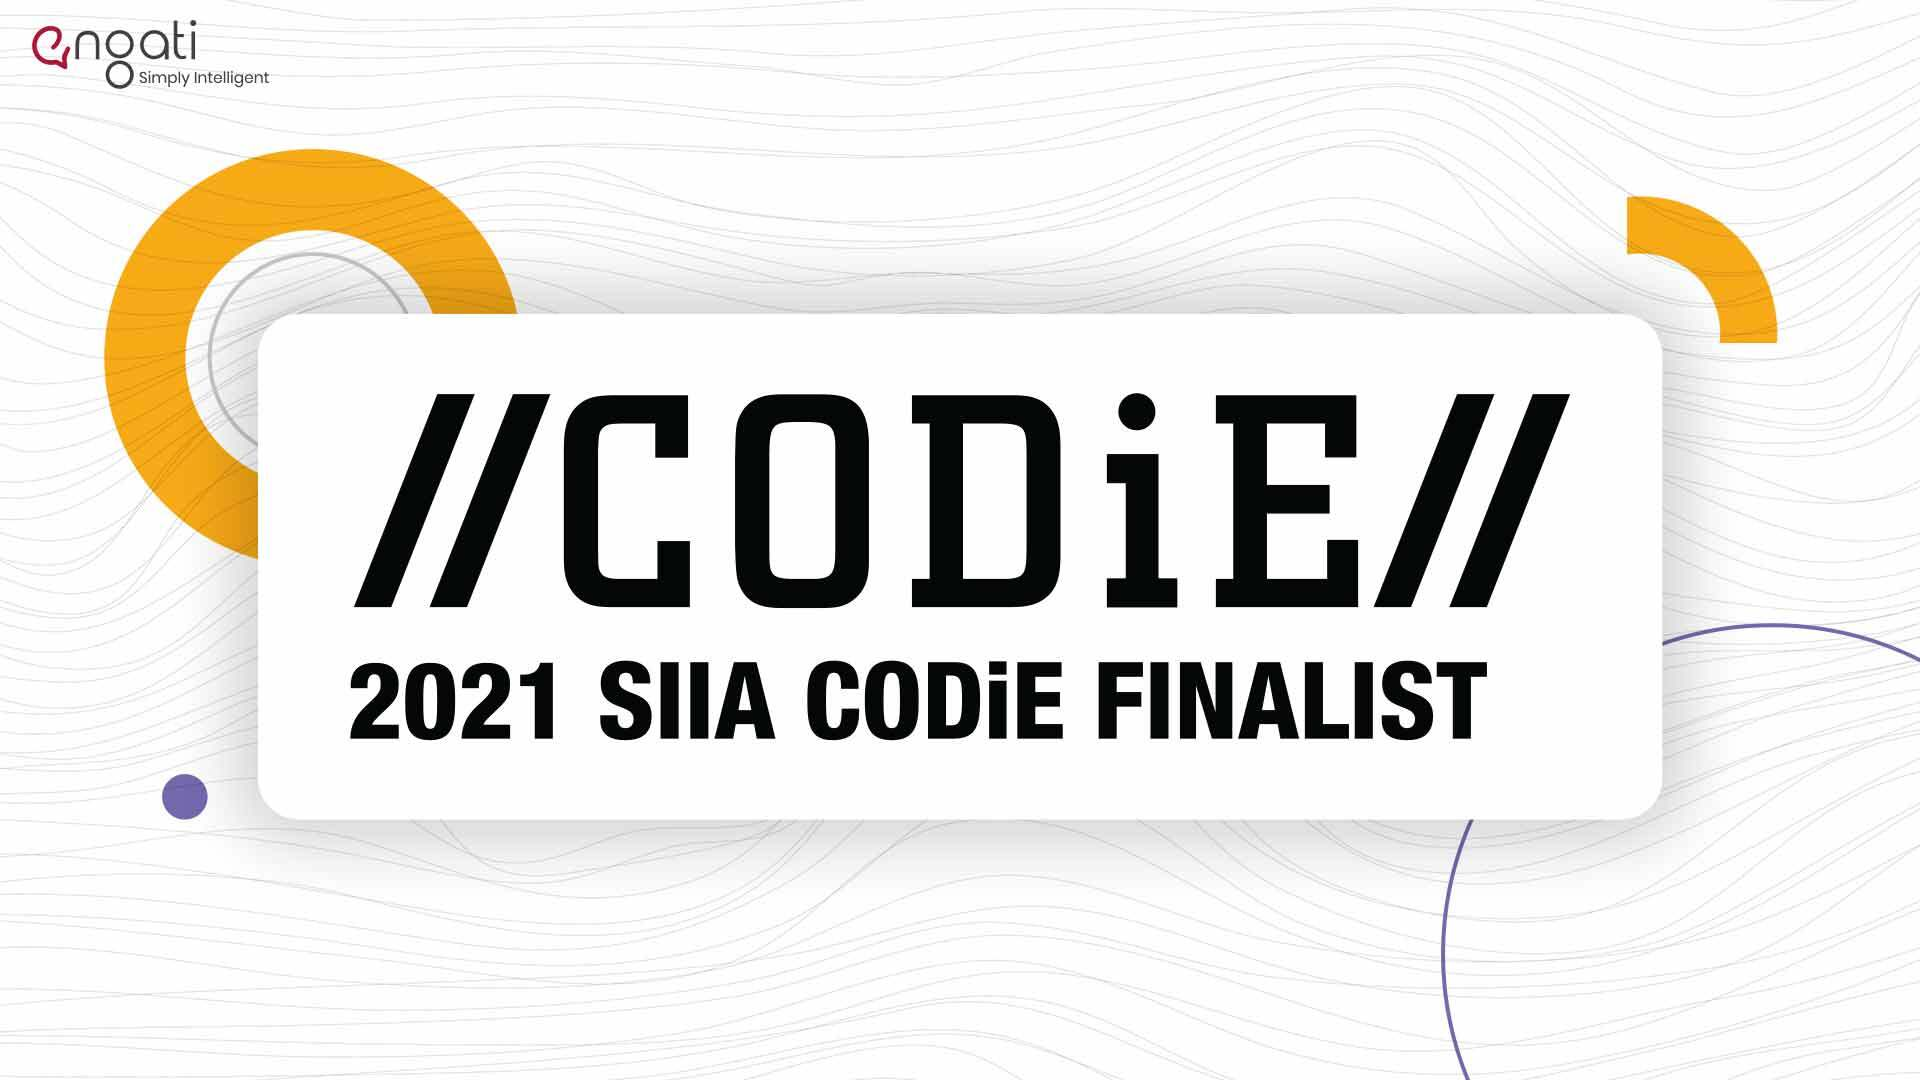 Breaking news: SIIA announces Engati as a finalist for the 2021 CODiE Awards